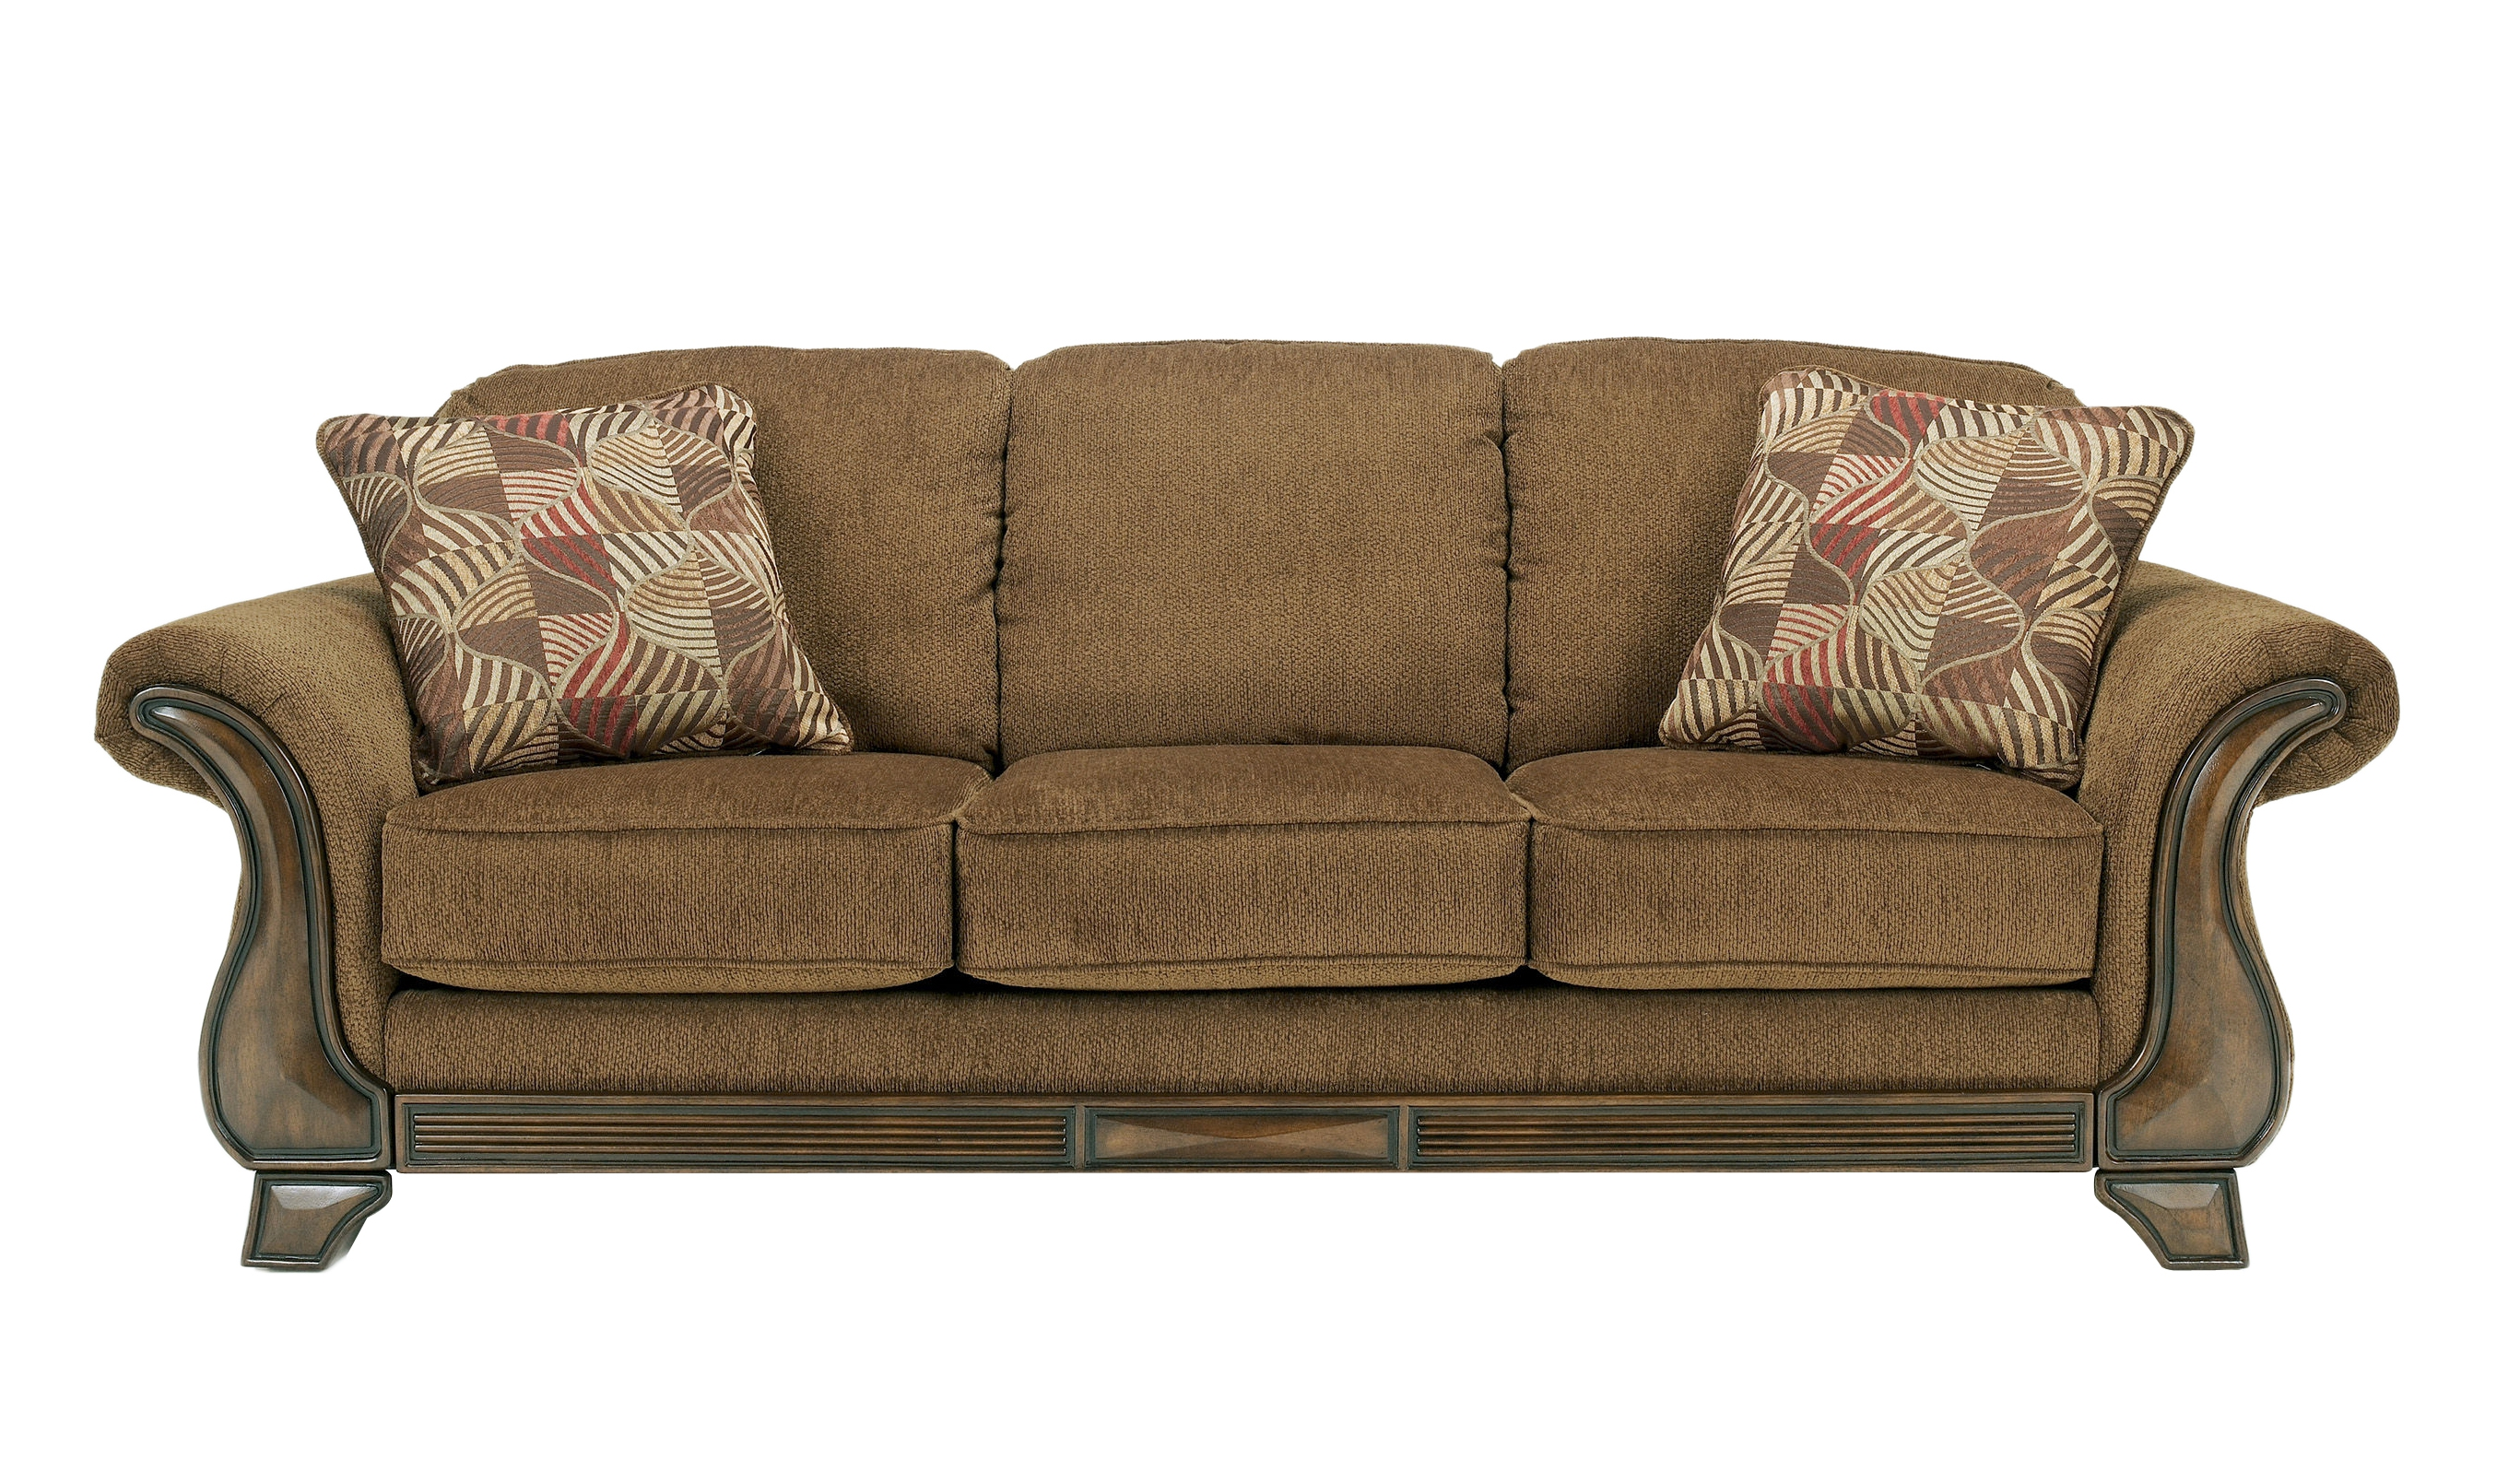 Ashley Furniture Montgomery Traditional Sofa The Classy Home